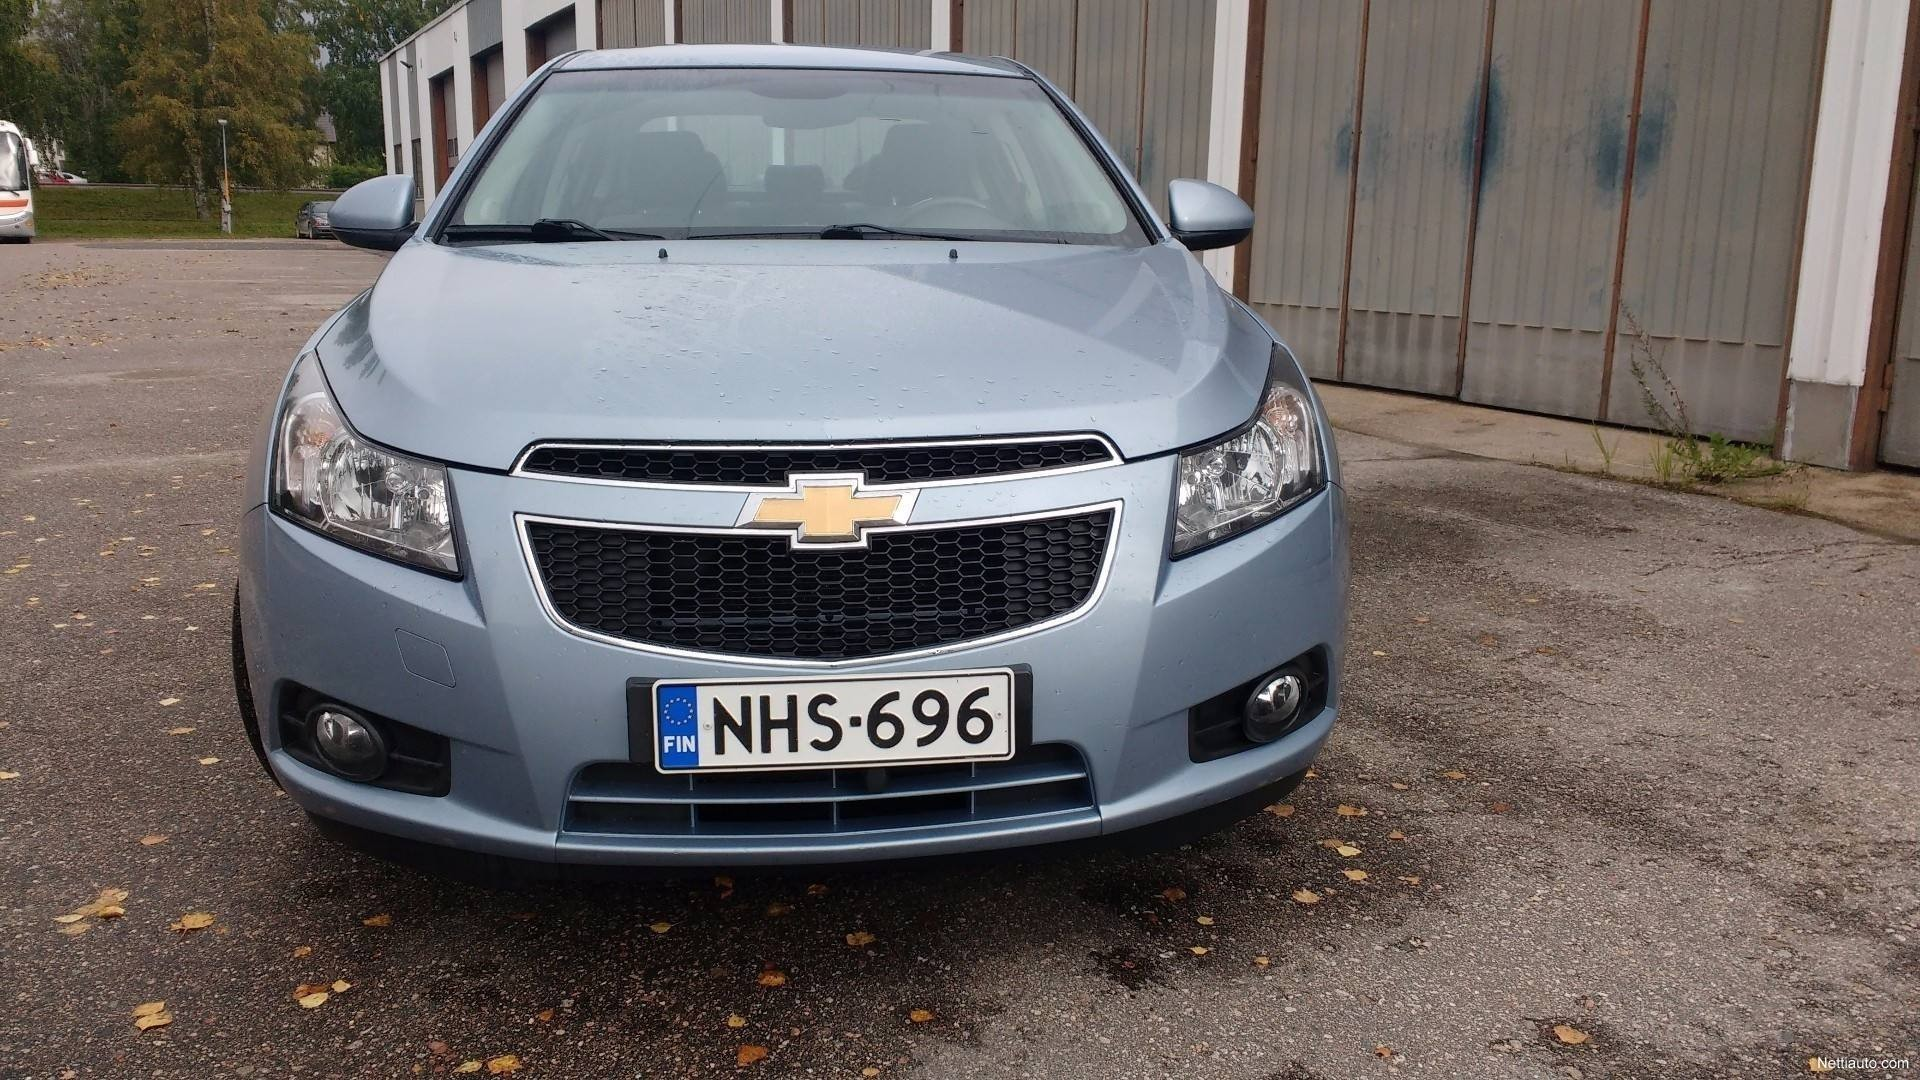 hight resolution of 2014 chevy cruze engine diagram best 2014 chevy cruze headlights designs of 2014 chevy cruze engine